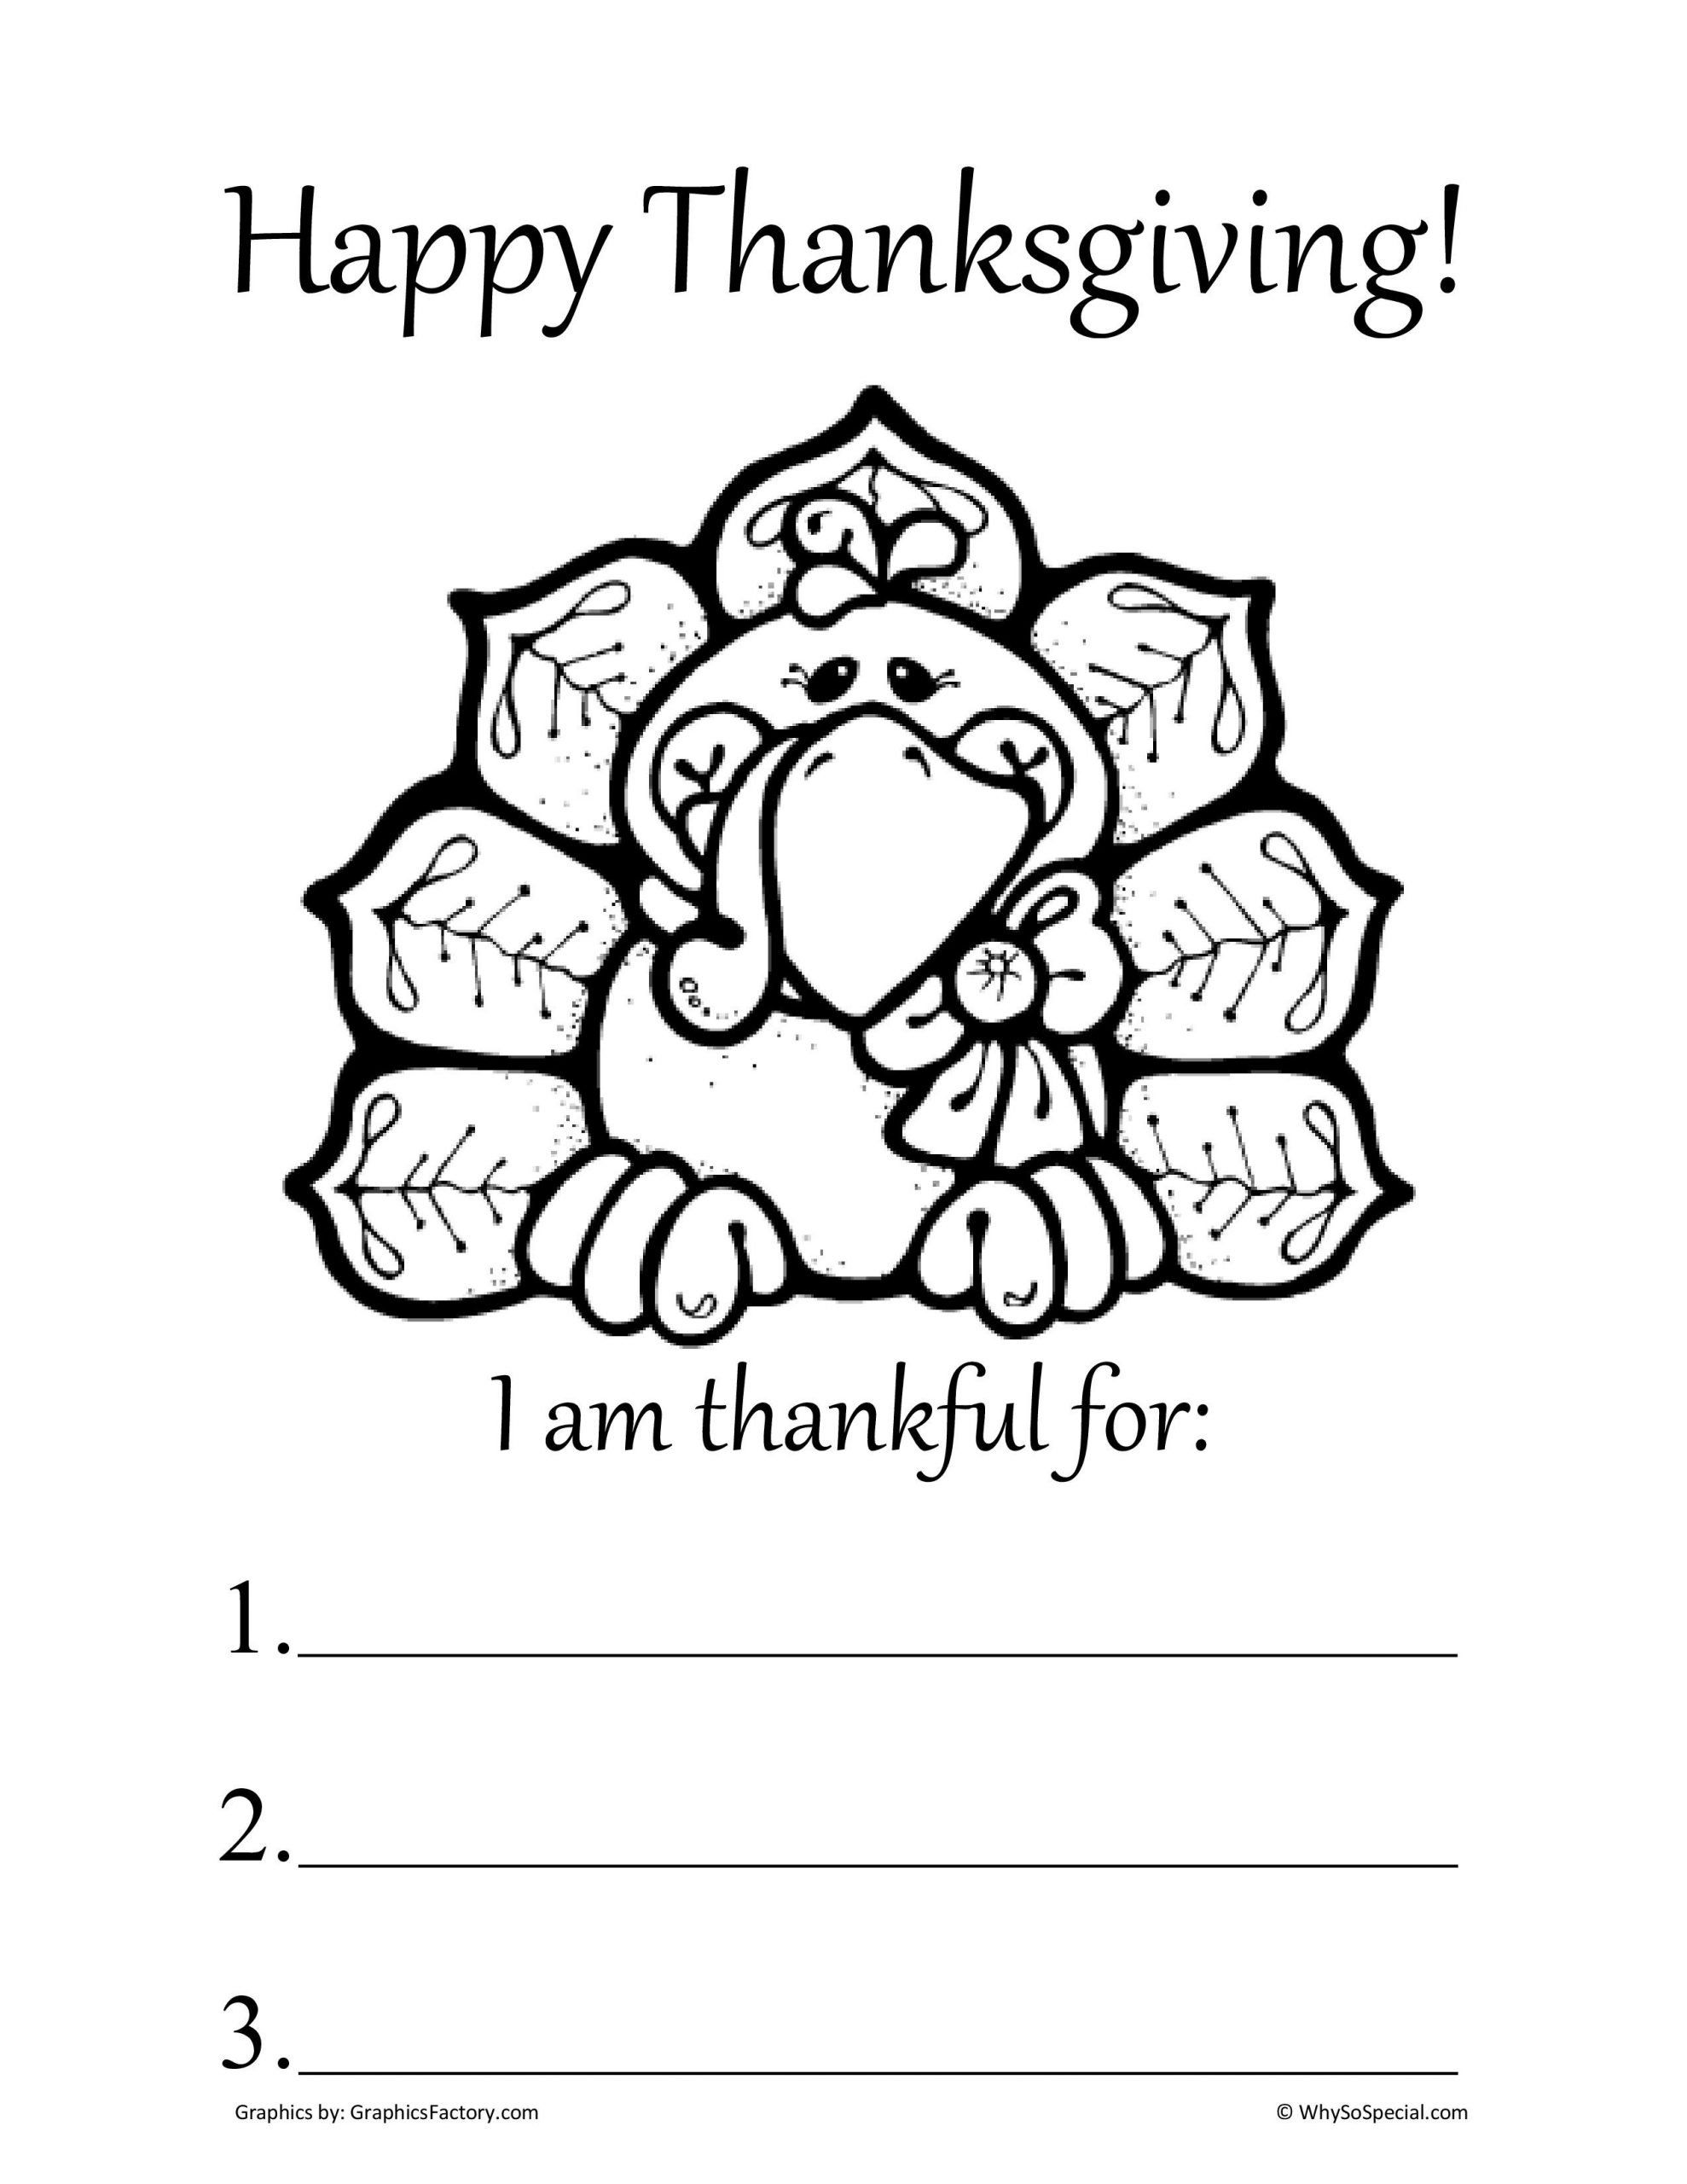 Thanksgiving Math Worksheets First Grade Image Result For Thanksgiving Worksh Thanksgiving Math Worksheets Thanksgiving Worksheets Kindergarten Math Worksheets